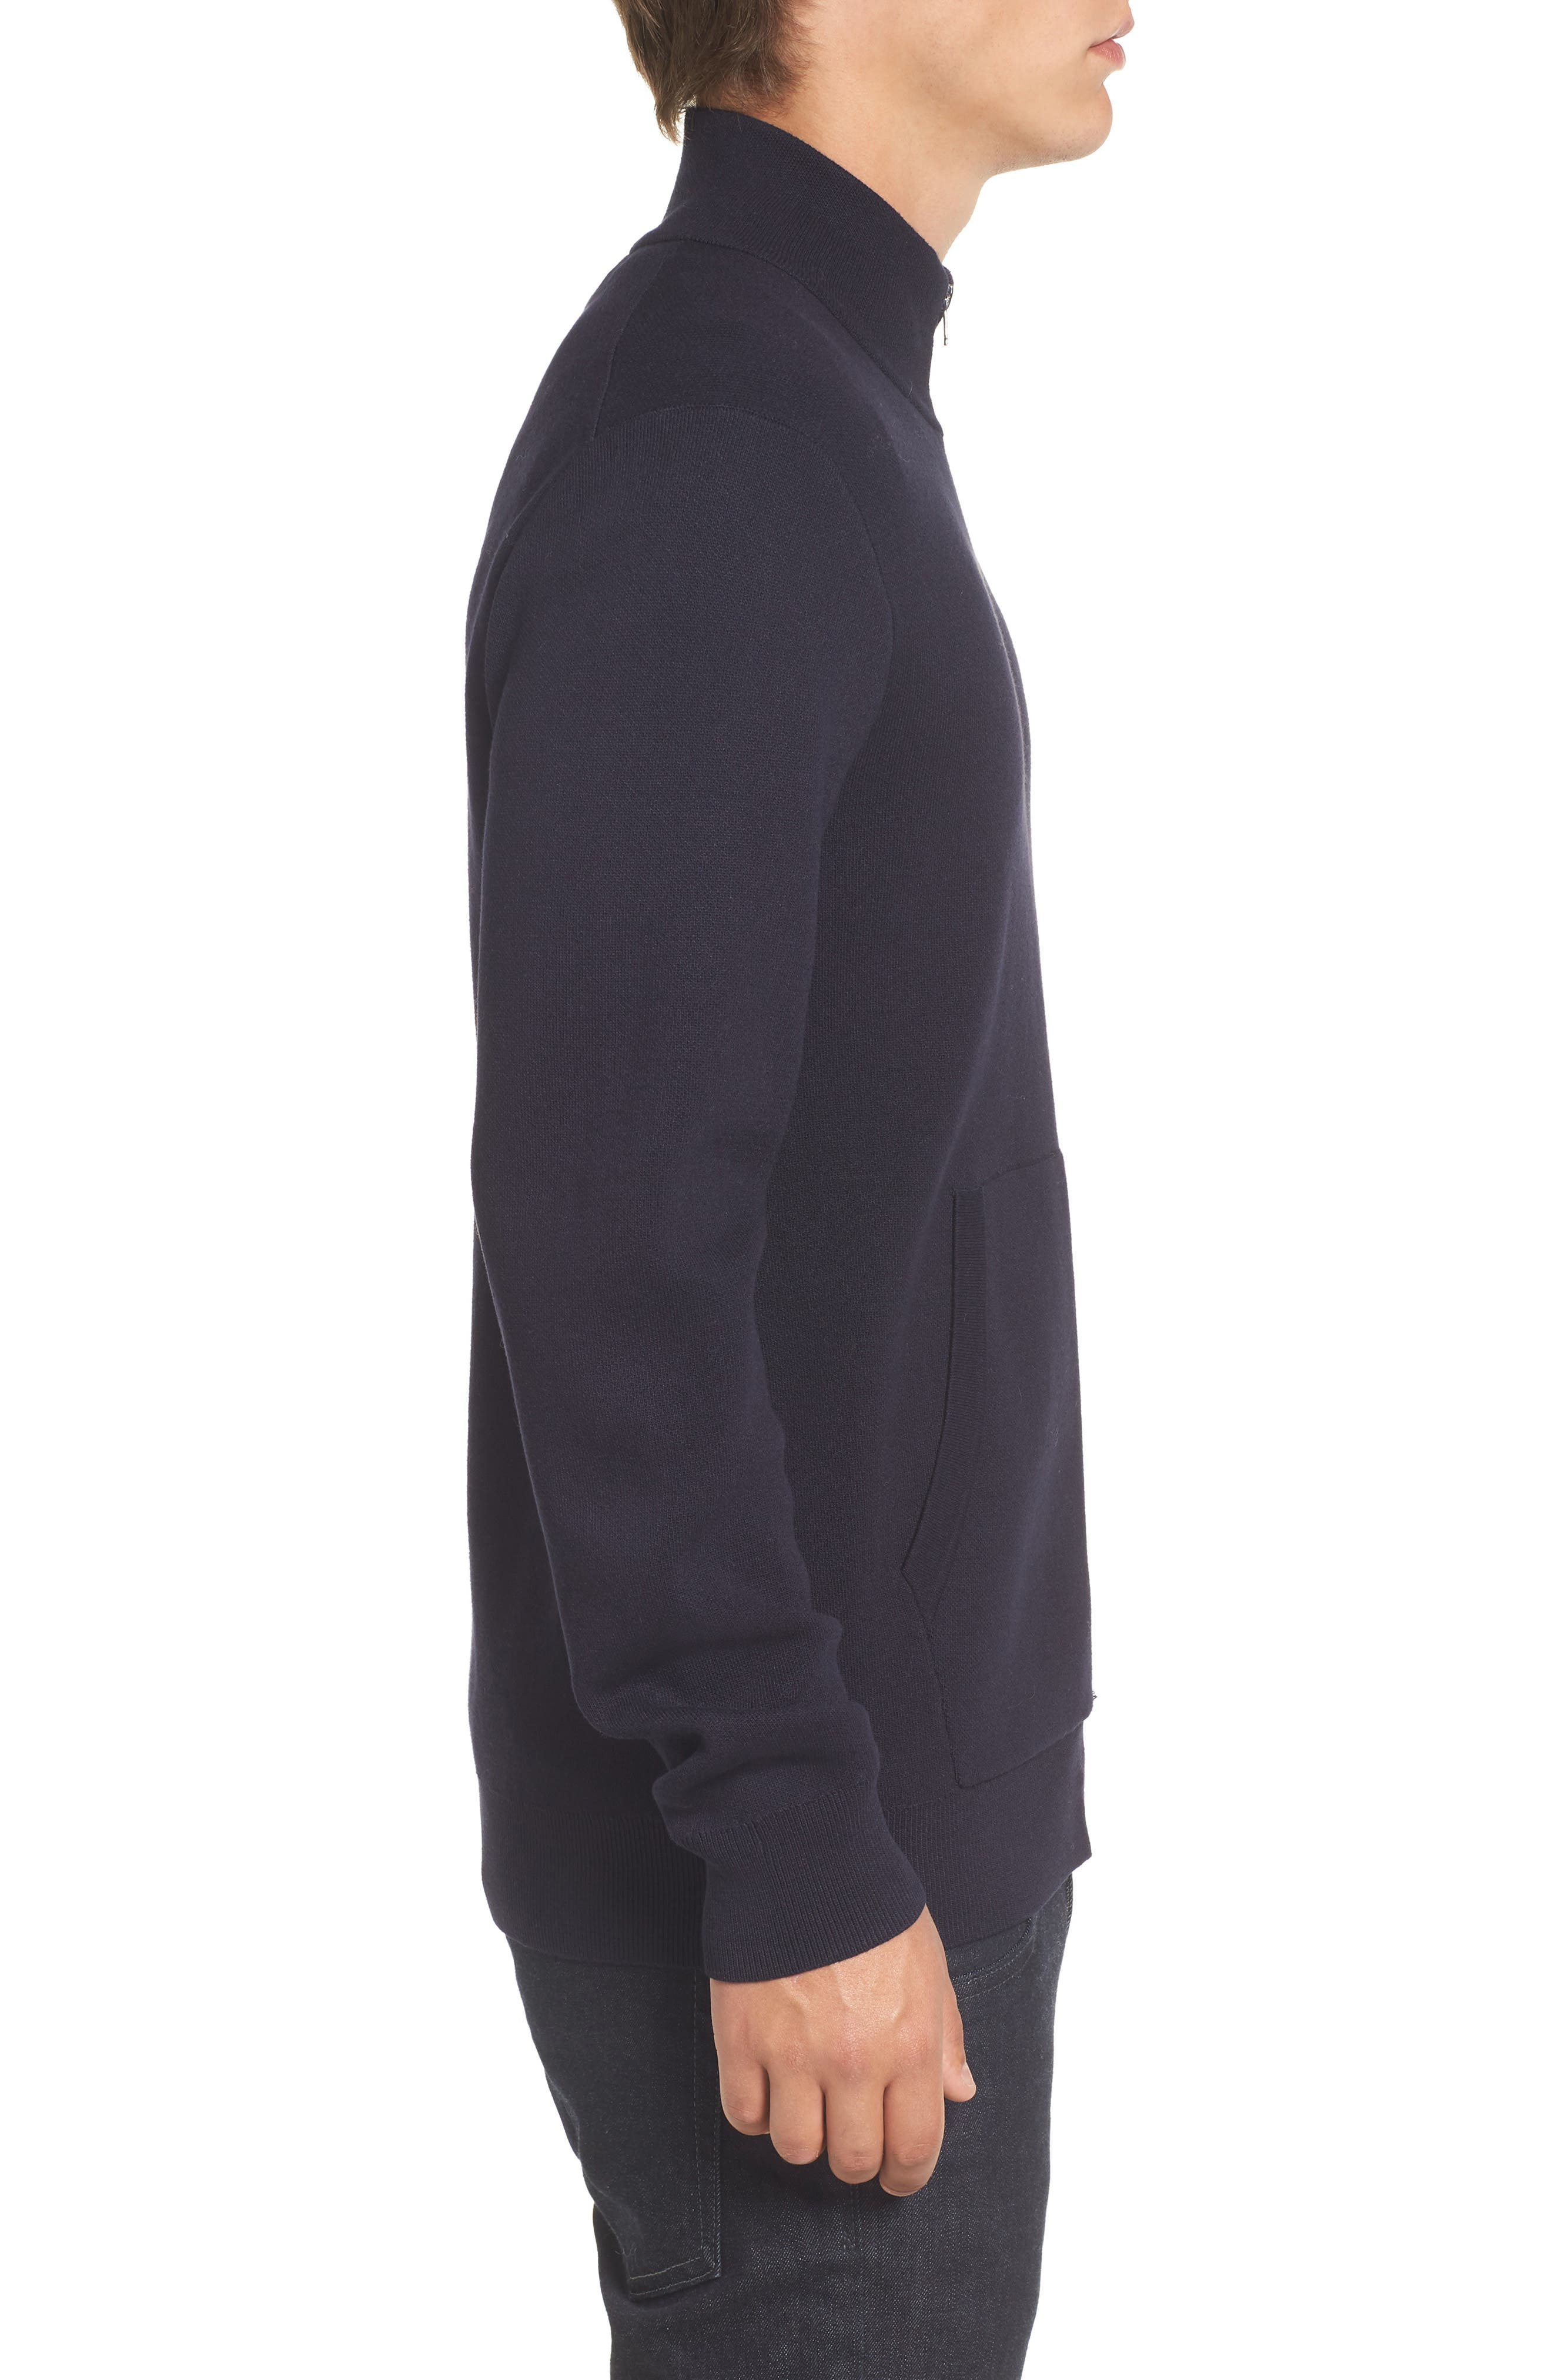 Lakra Zip-Up Sweater,                             Alternate thumbnail 3, color,                             Marine Blue